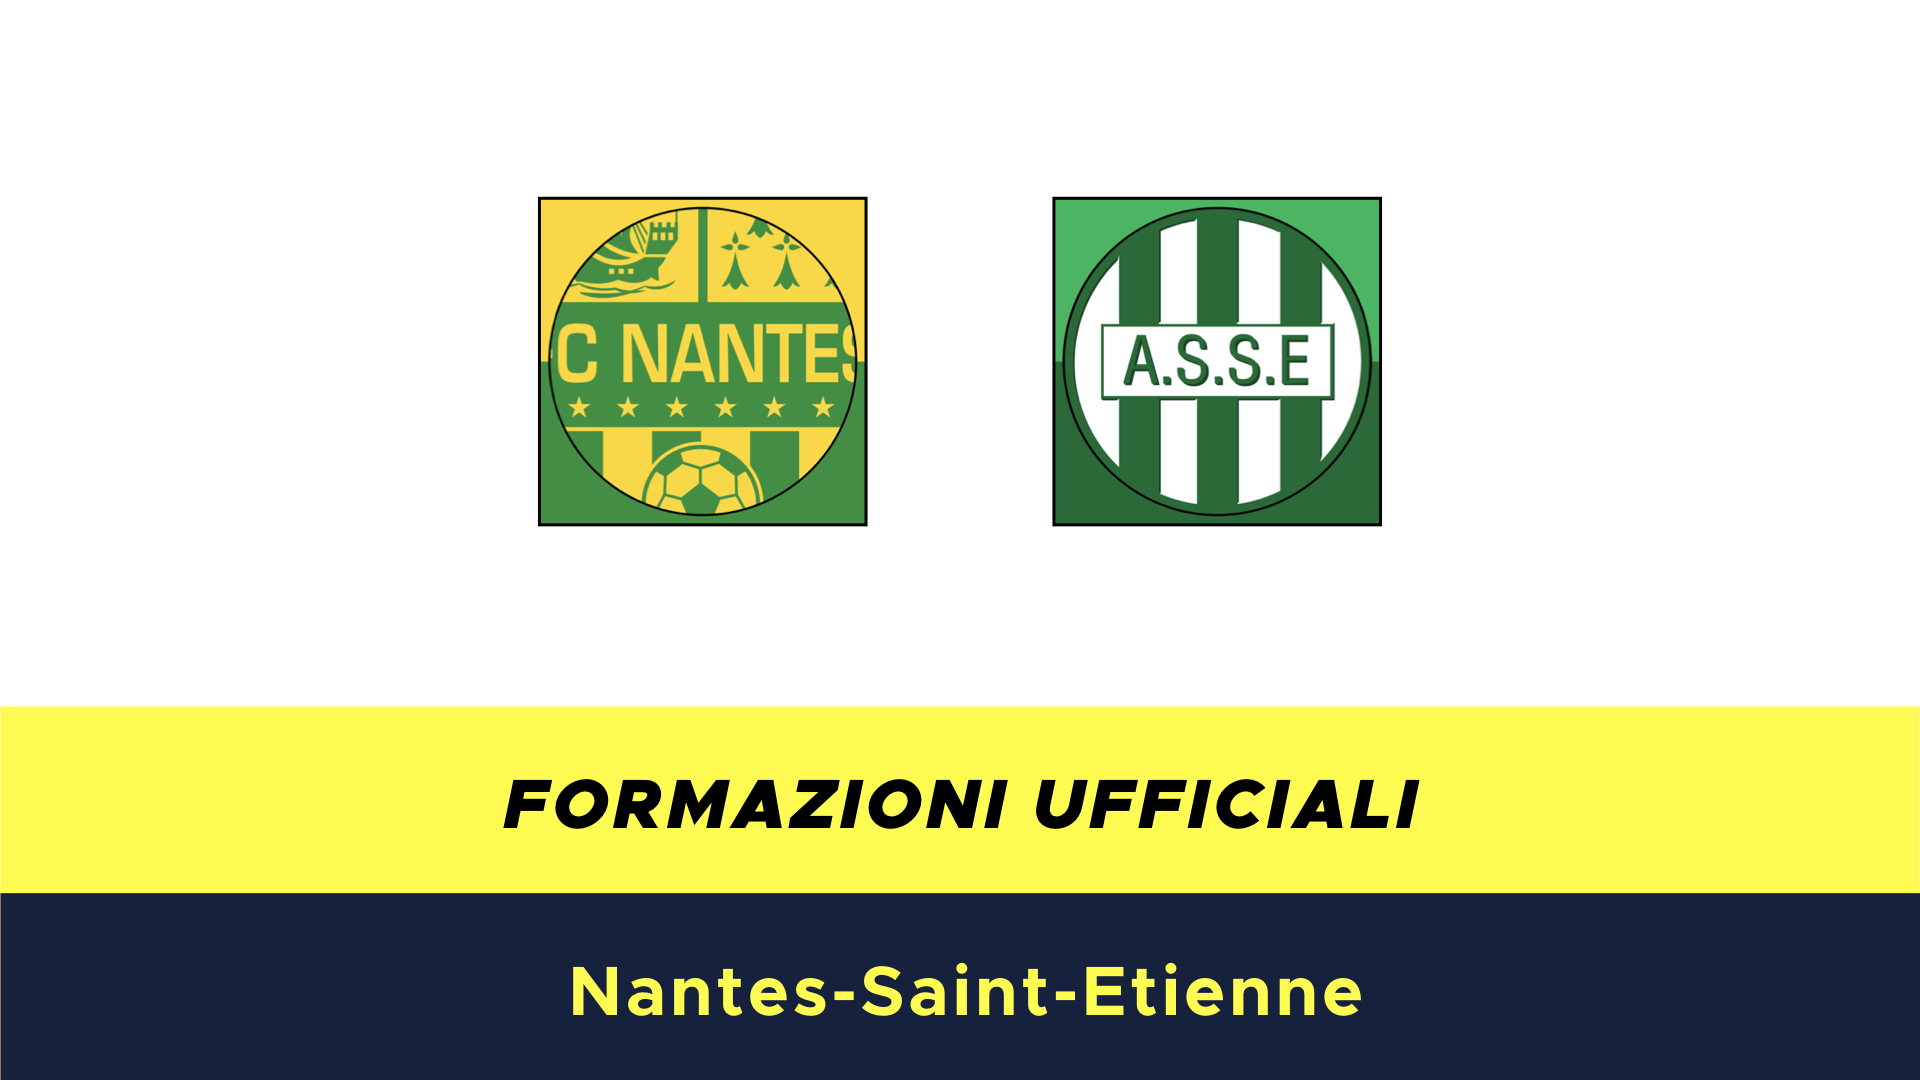 nantes st etienne formazioni ufficiali e dove vederla in tv e streaming. Black Bedroom Furniture Sets. Home Design Ideas